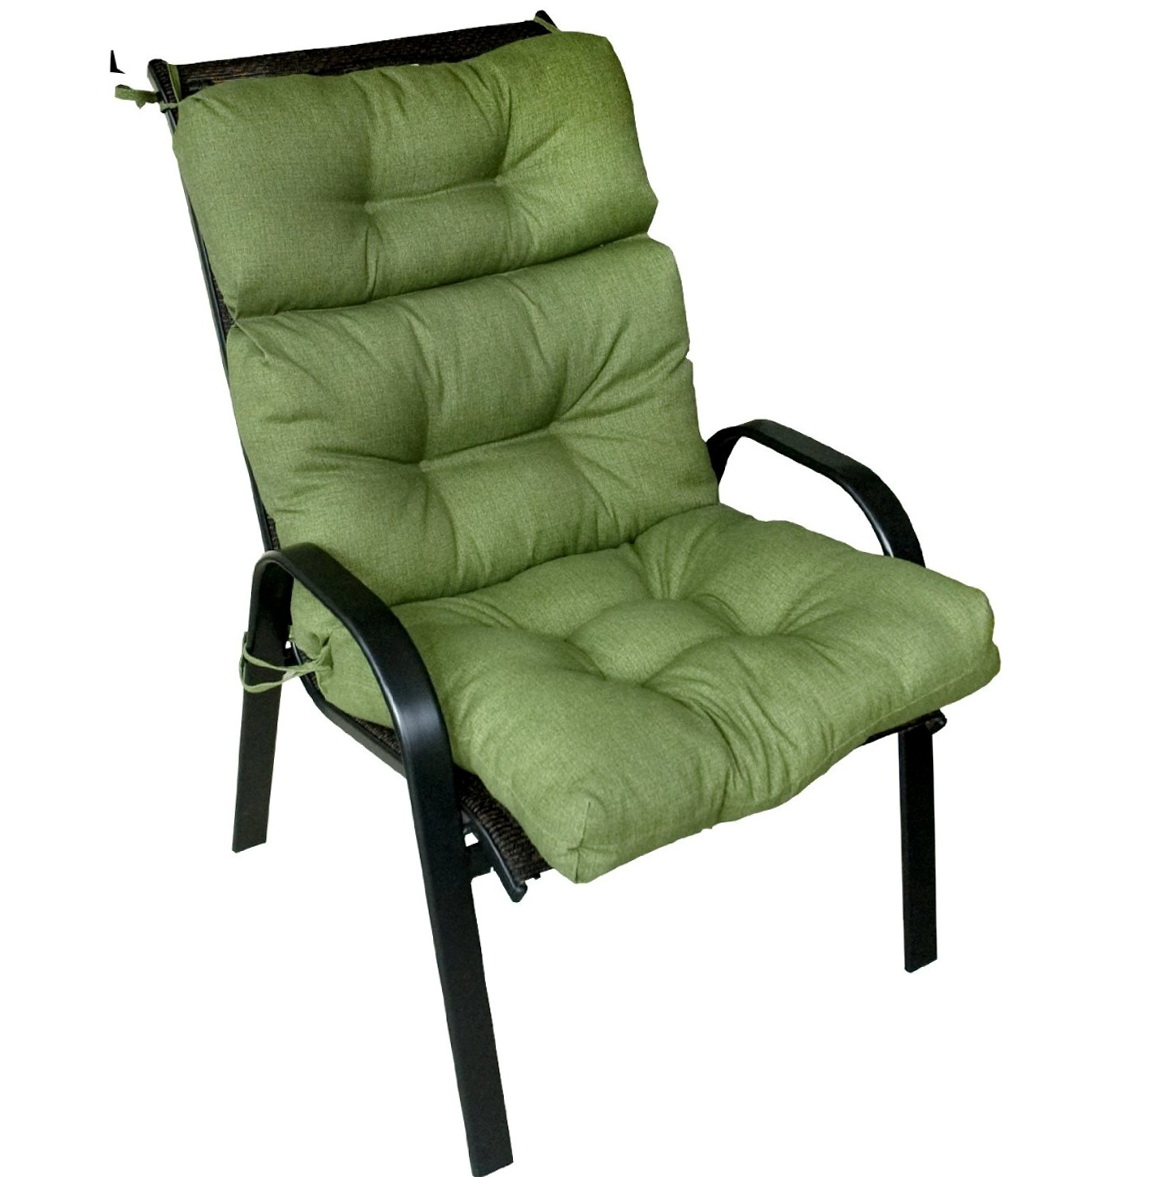 clearance outdoor chair cushions green kitchen patio furniture seat home design ideas